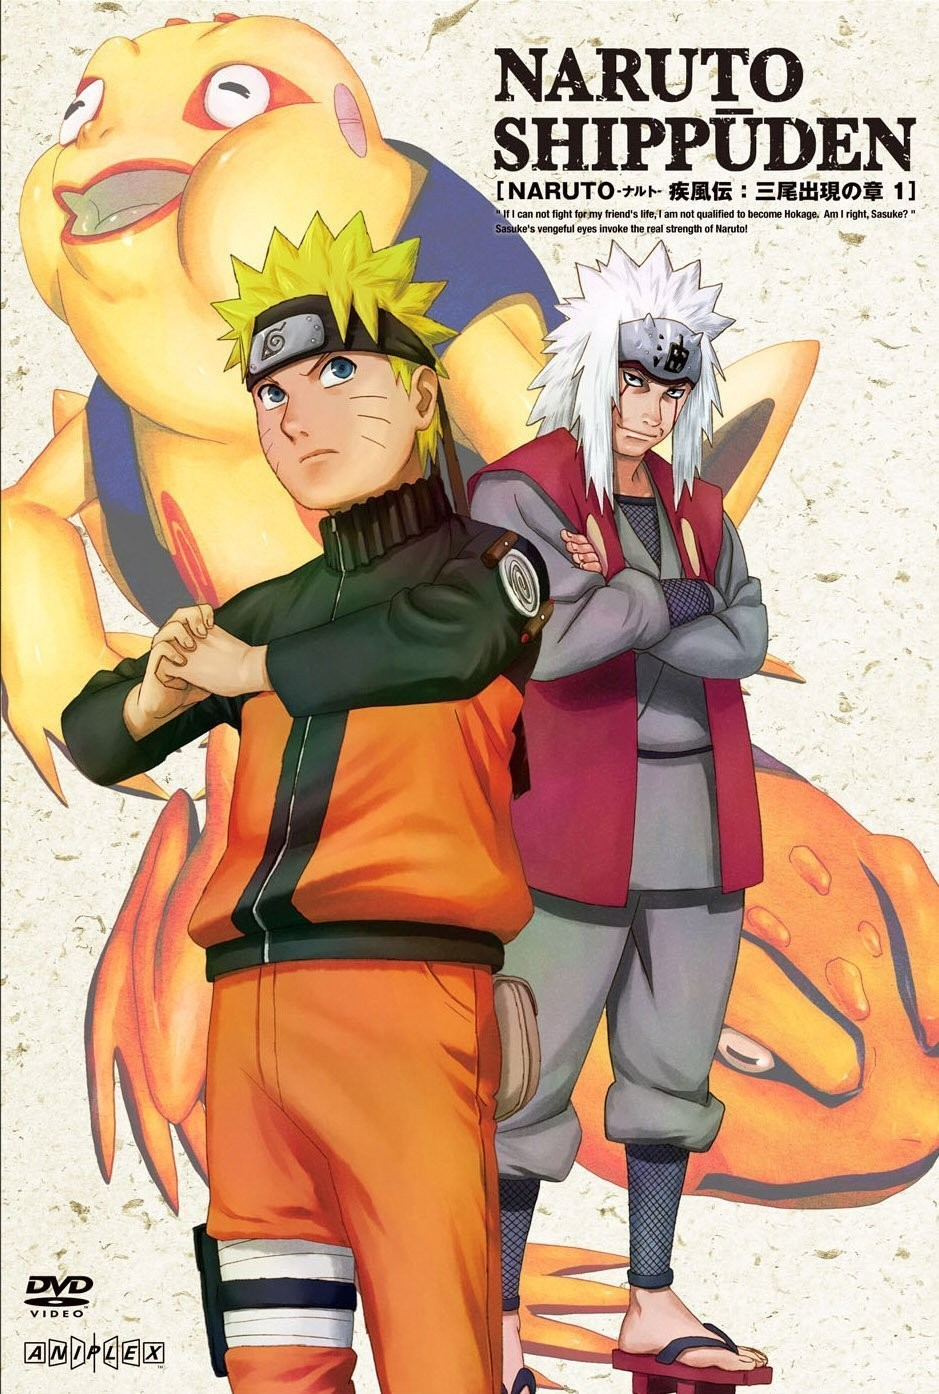 naruto black dating site Guided by the spirit demon within him, orphaned naruto learns to harness his  powers as a ninja in this anime  director: hayato date  konohamaru, the  grandson of the leaf village's third hokage, shows up at the chunin exam site.